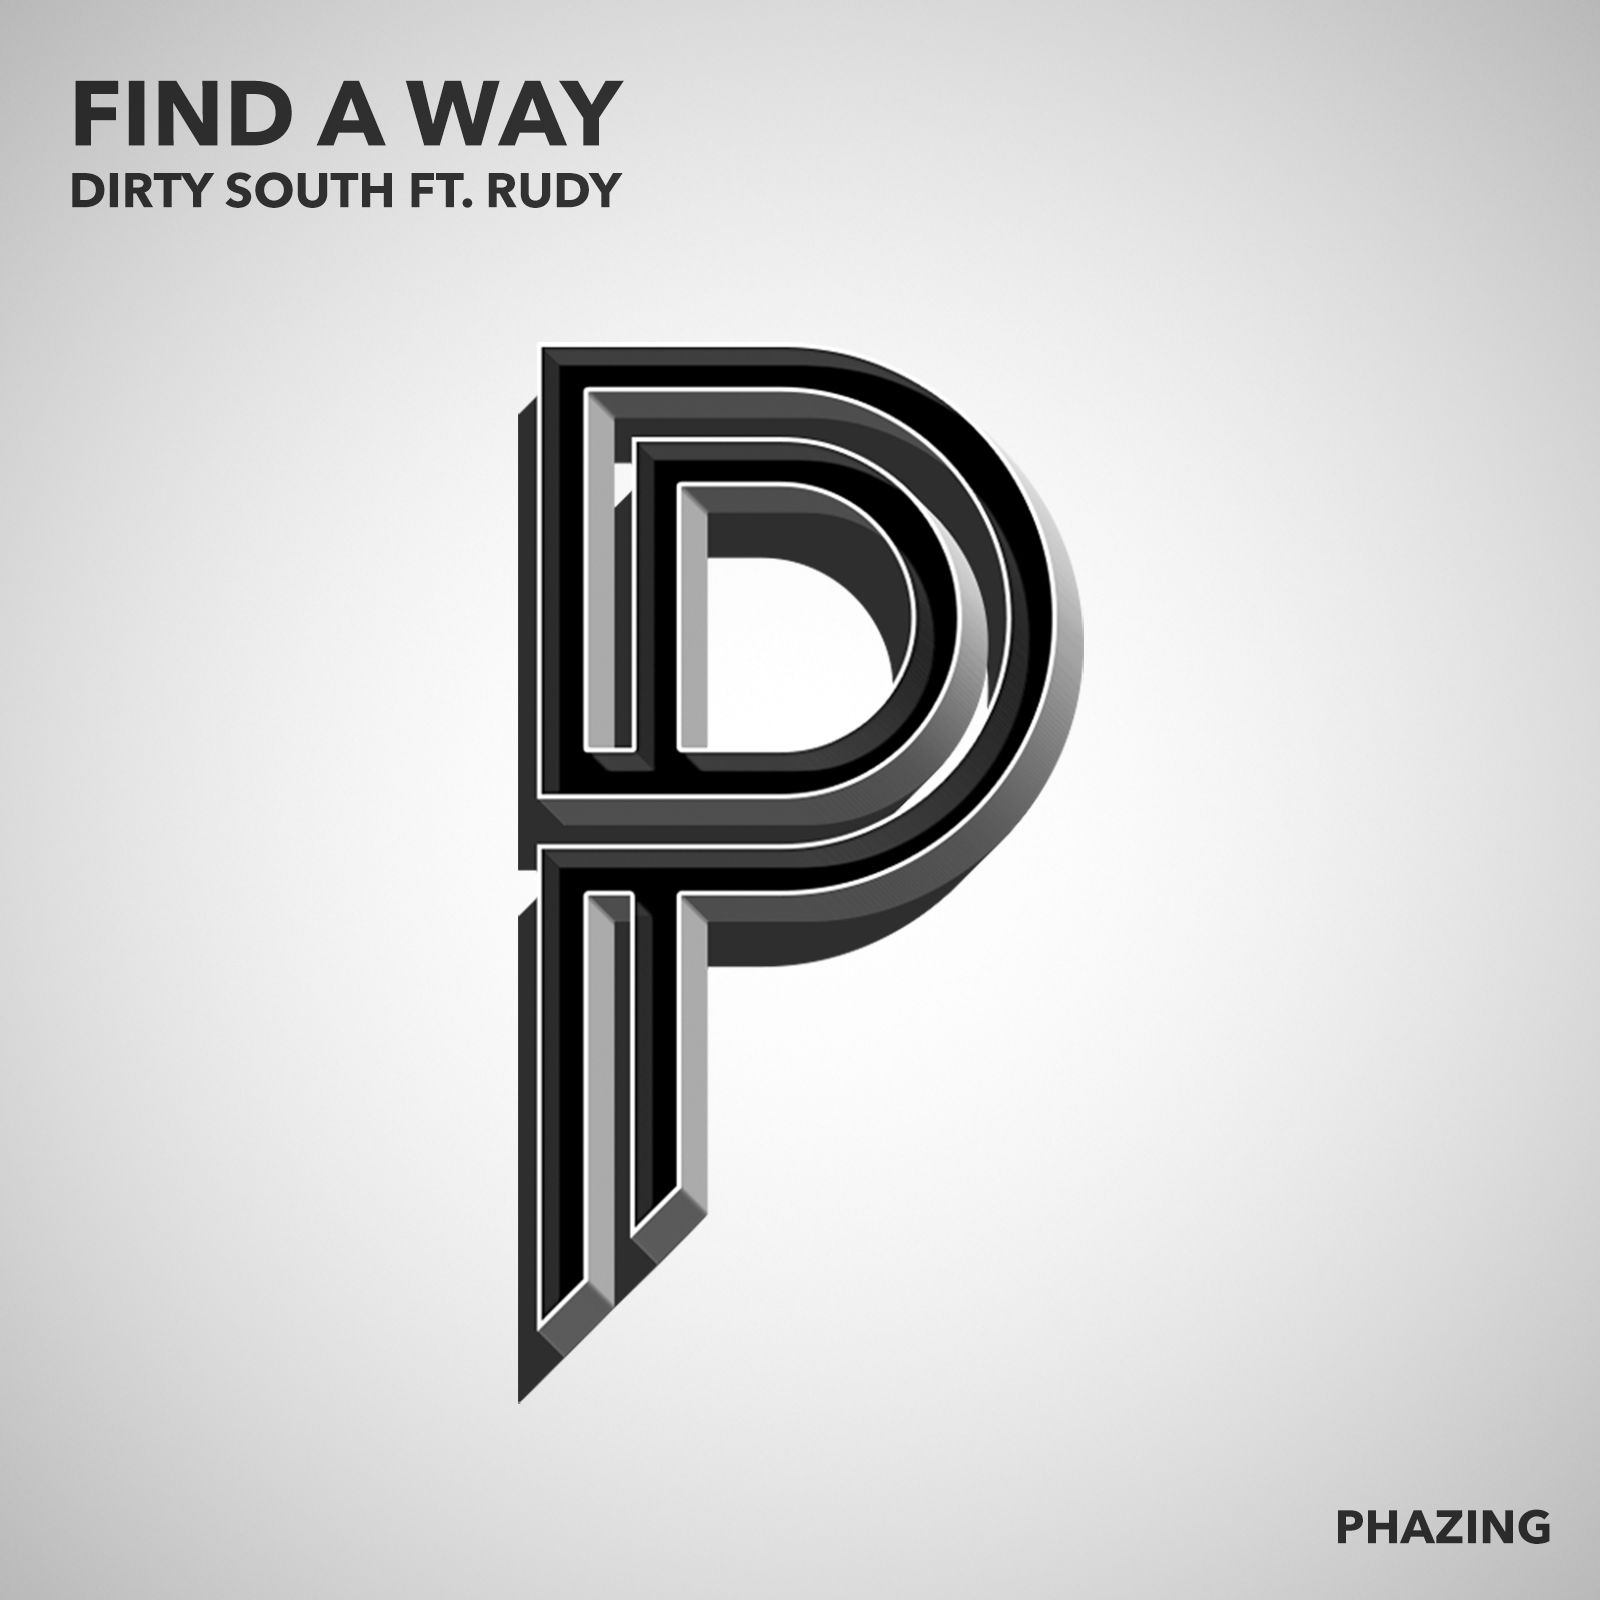 Dirty South, Rudy – Find a Way (single cover art)